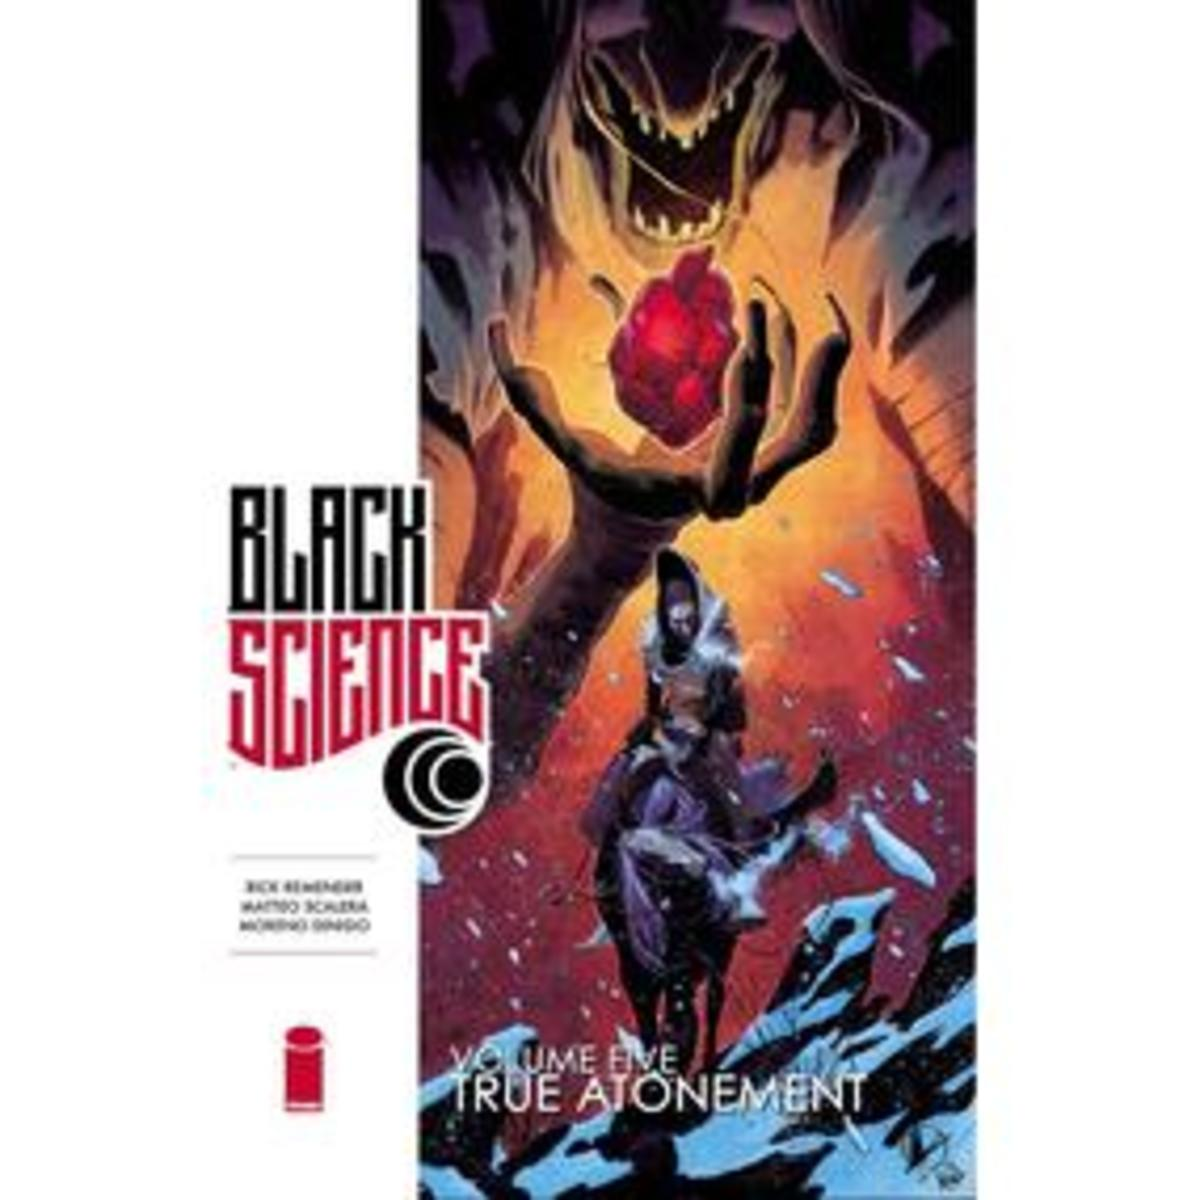 Review of Black Science, volume 5: True Atonement